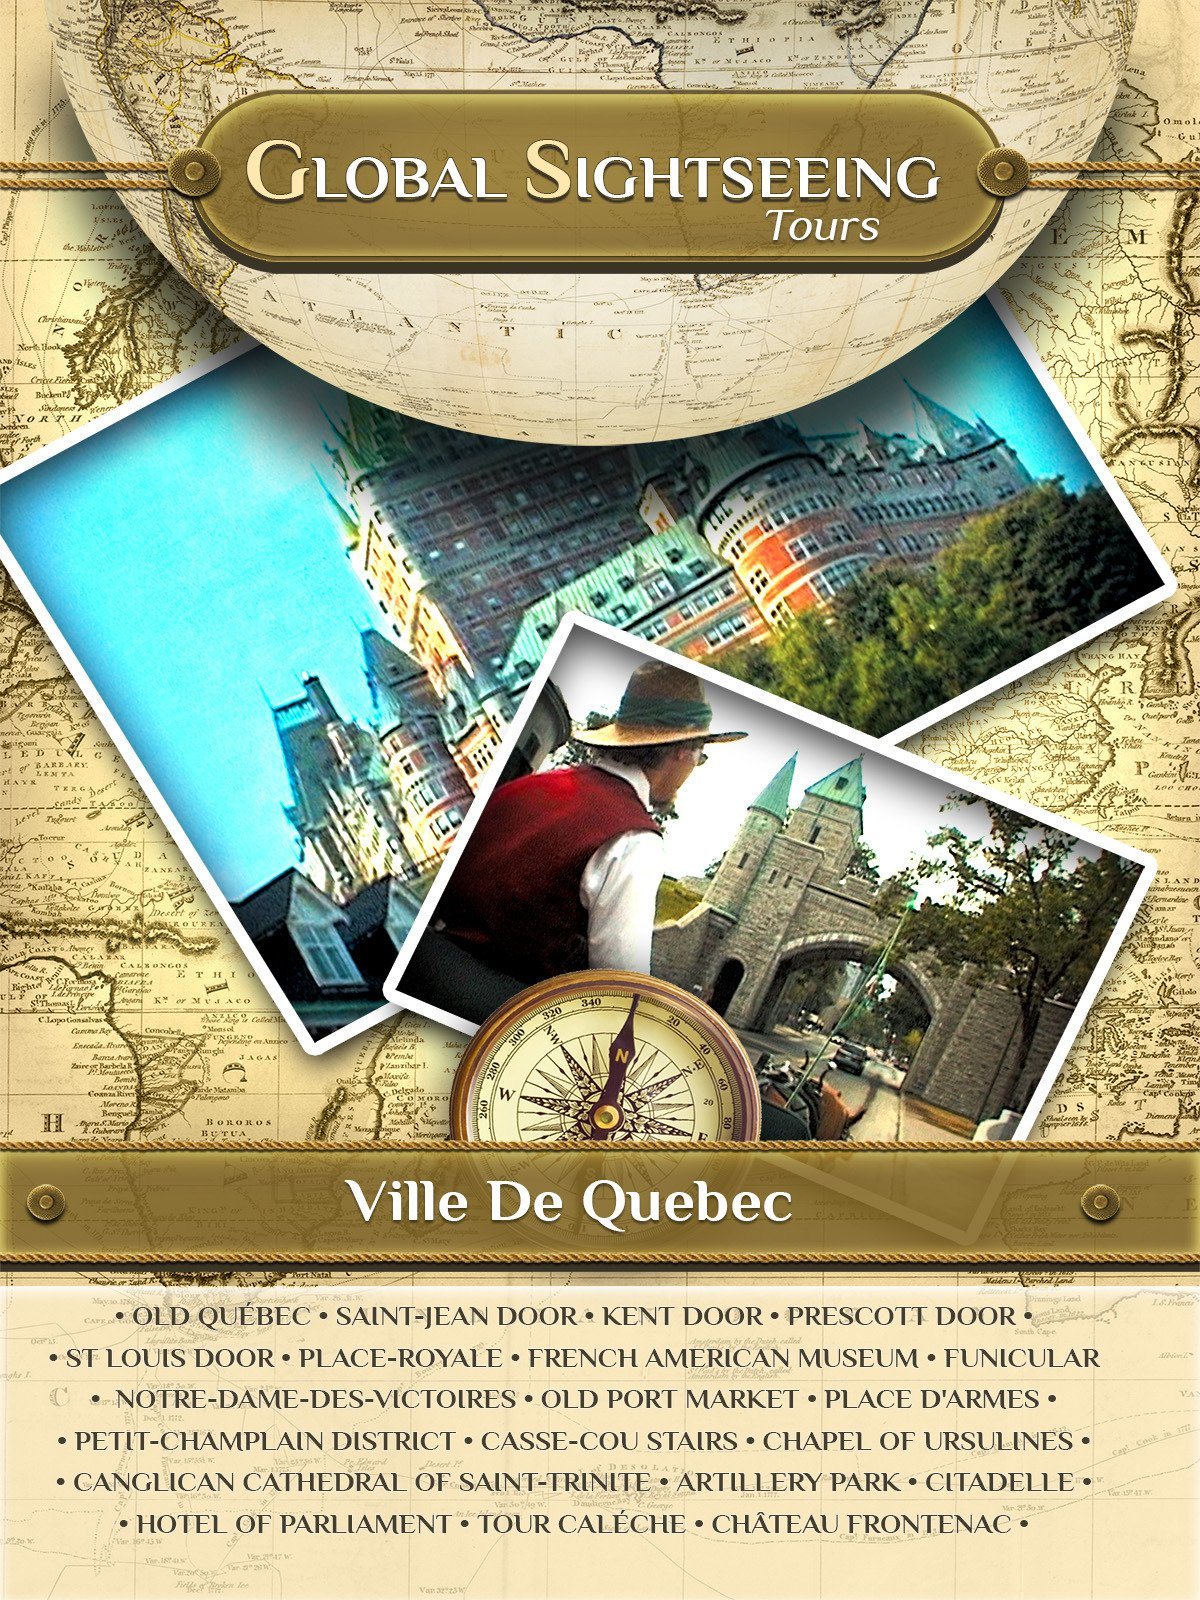 Ville de Quebec, Canada - Global Sightseeing Tours on Amazon Prime Instant Video UK